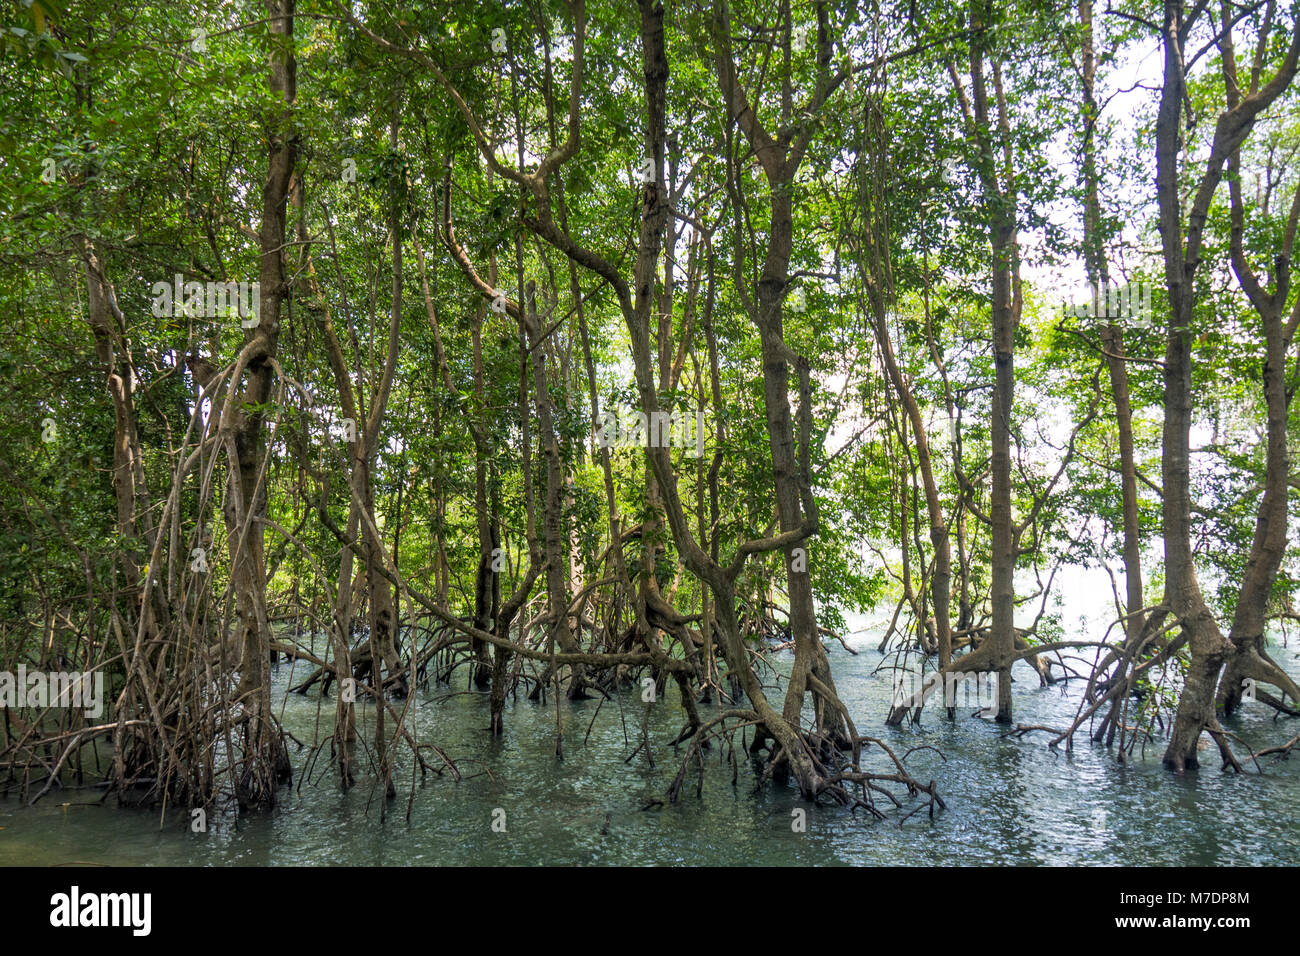 mangroves-in-chek-jawa-wetlands-on-the-island-of-pulau-ubin-singapore-M7DP8M.jpg